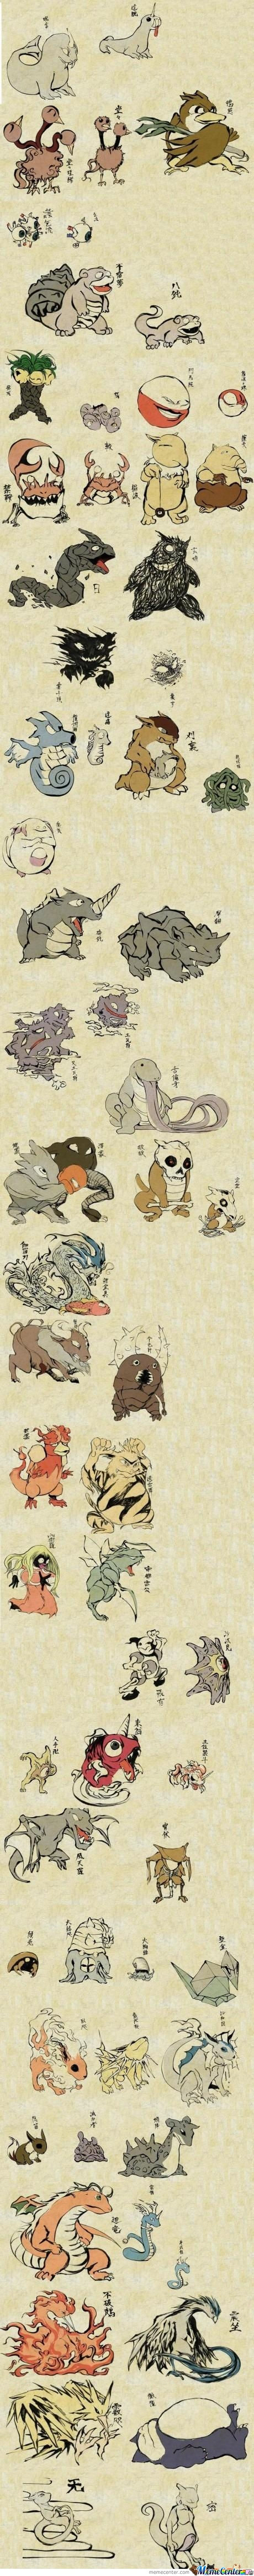 Traditional Japanese Pokemon